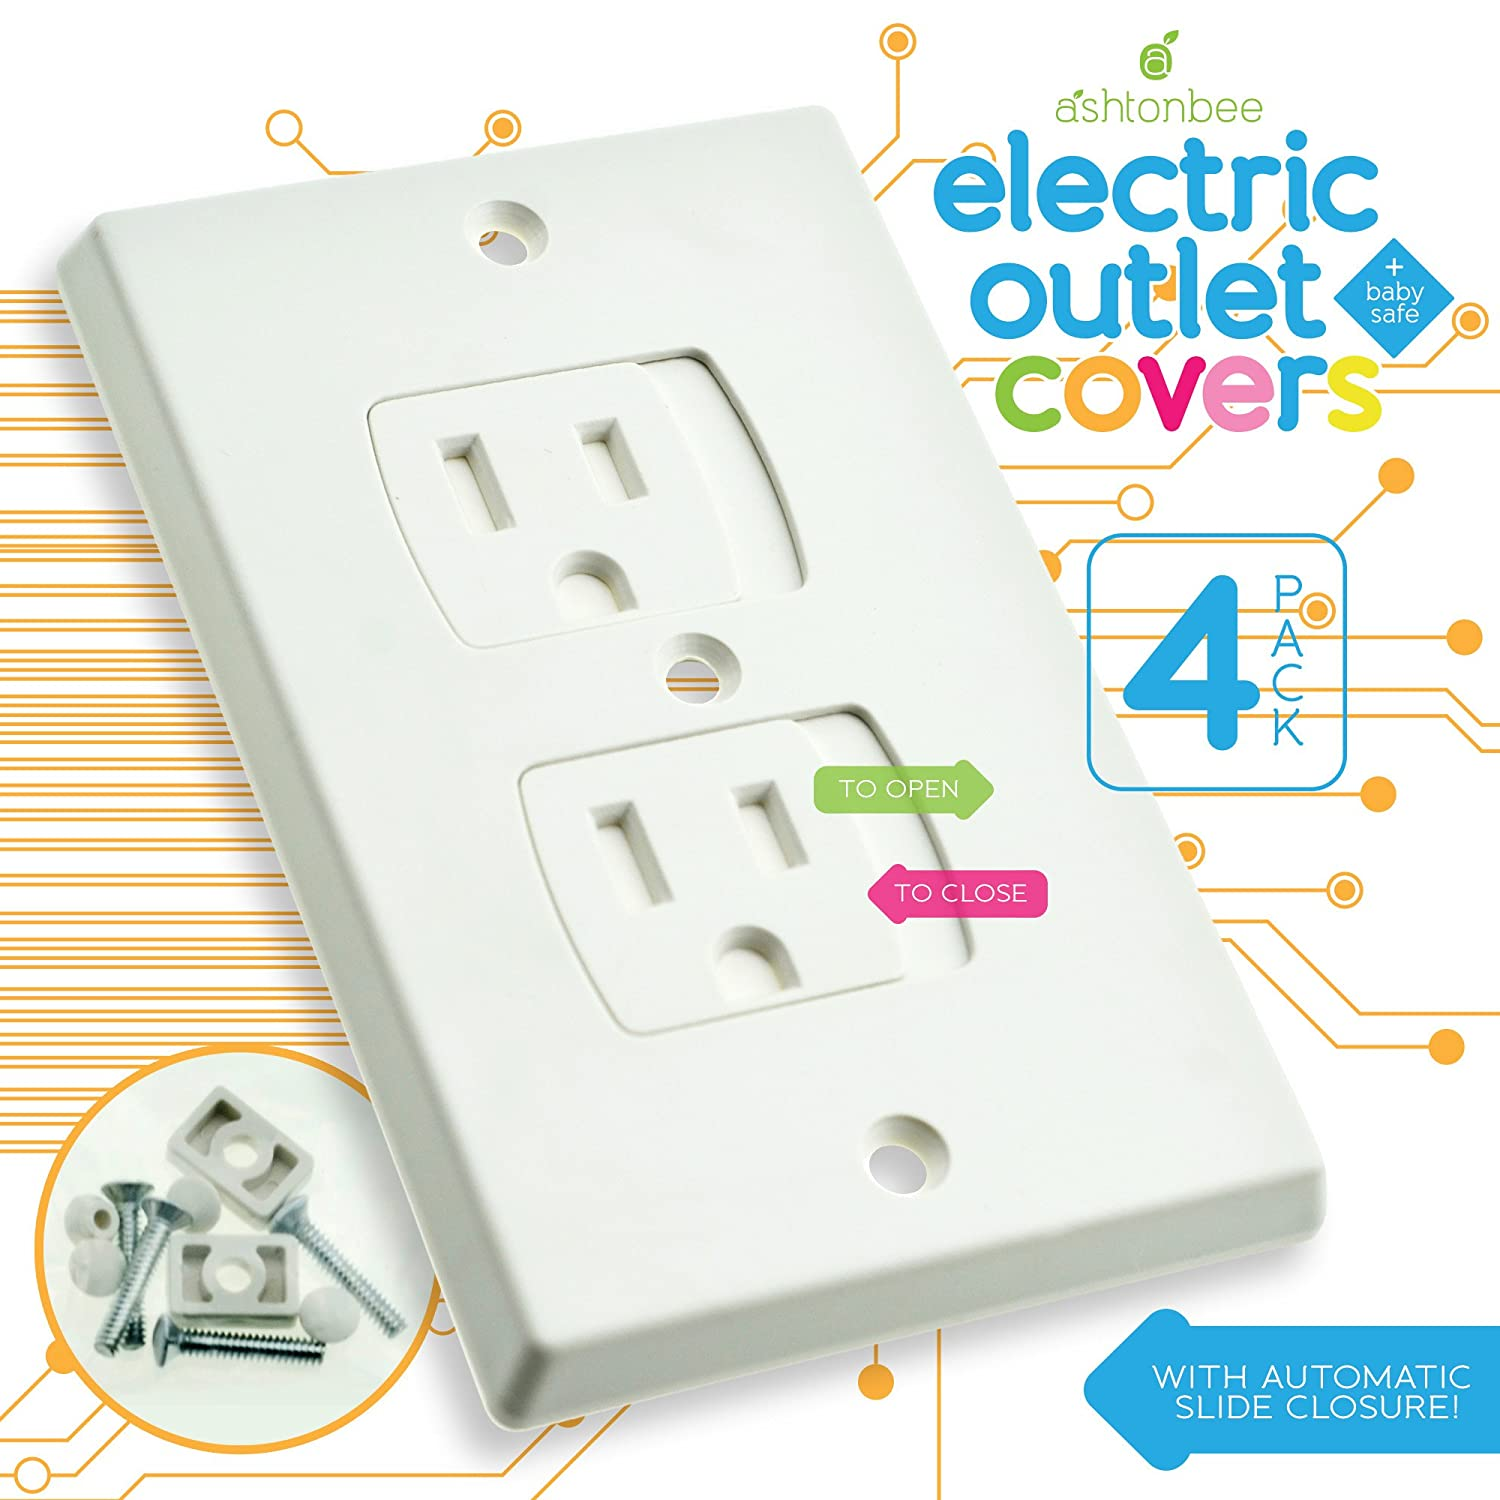 Child Safety Electrical Outlet Covers for Baby Proofing - Best Childproofing Self Closing BPA Free Wall Socket Plate, Better than Plugs (Set of 2, White) Ashtonbee ASH160628